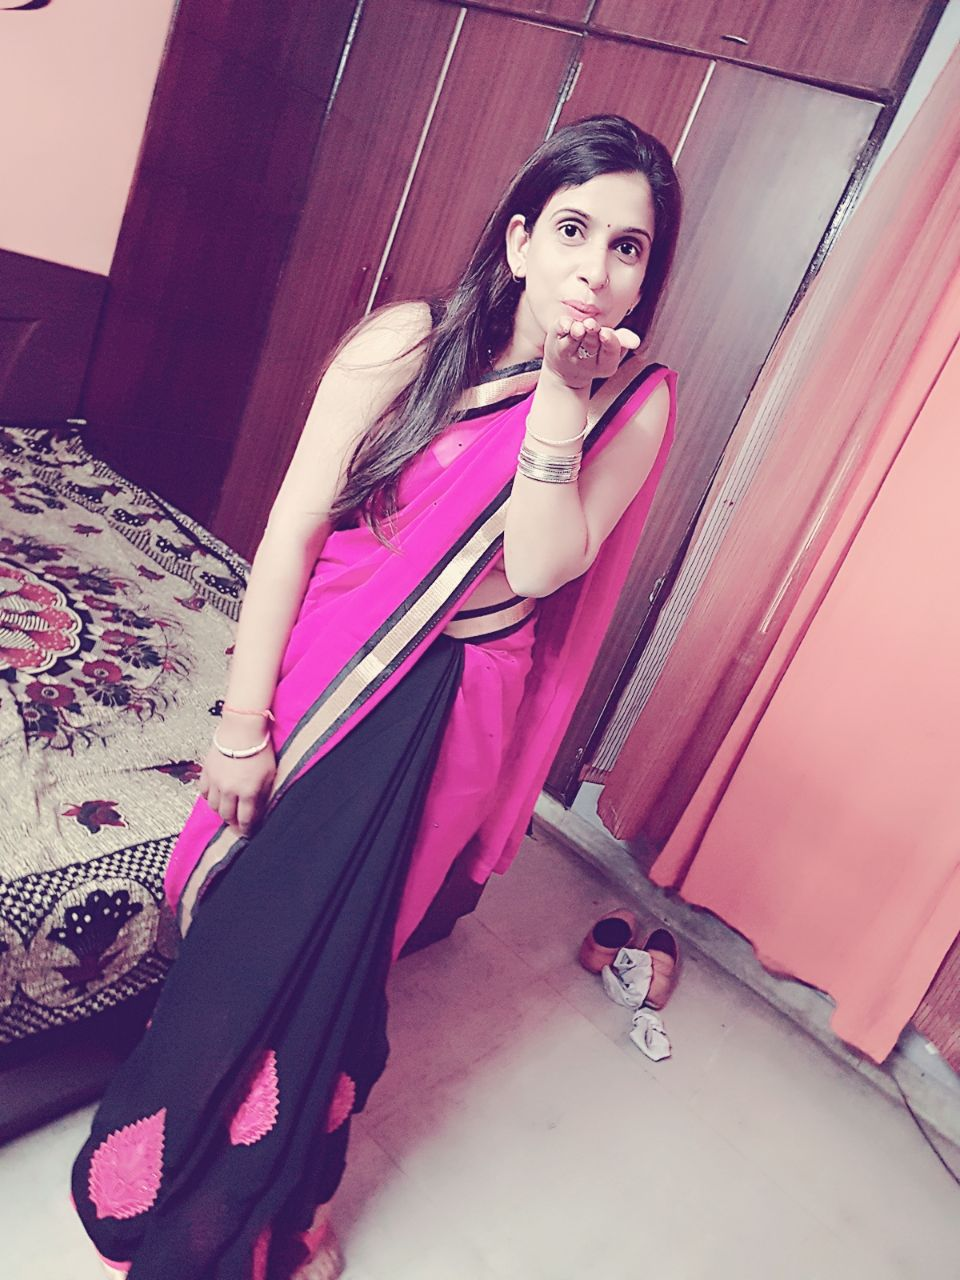 Desiring to have hottest Escorts Girls from India to you on demand. – parigirls.com